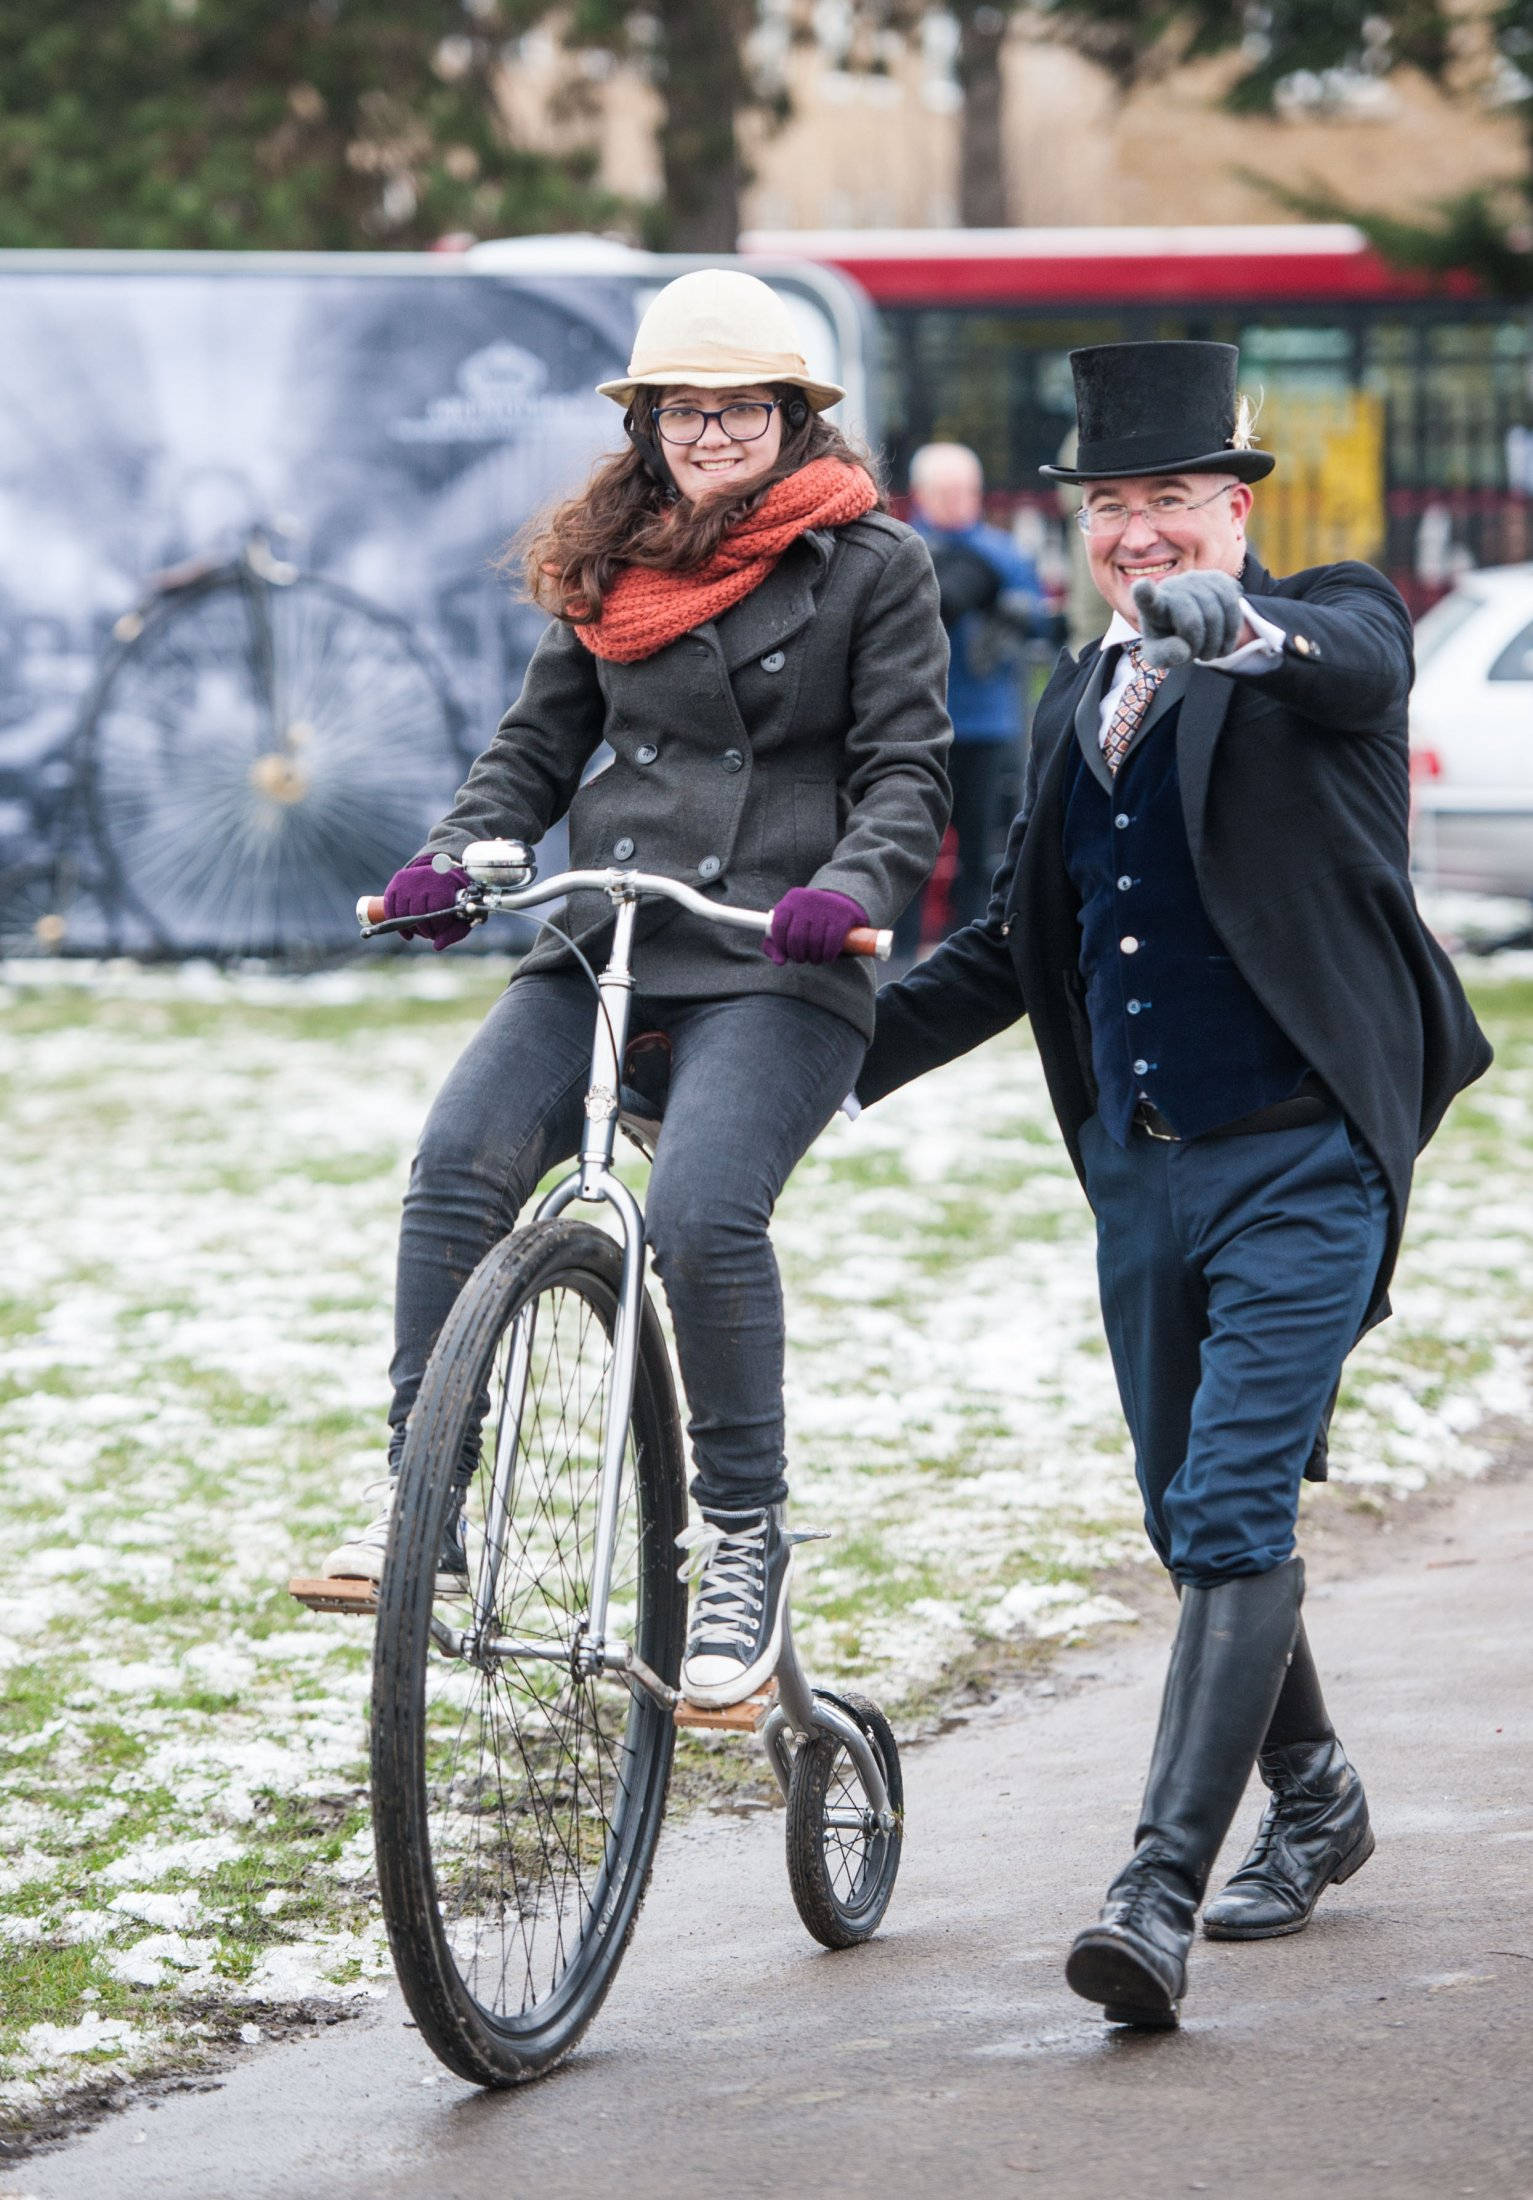 Penny-farthing recreation at Victoria Recreation Ground, Wheels of Time. Photo: Charlotte Levy